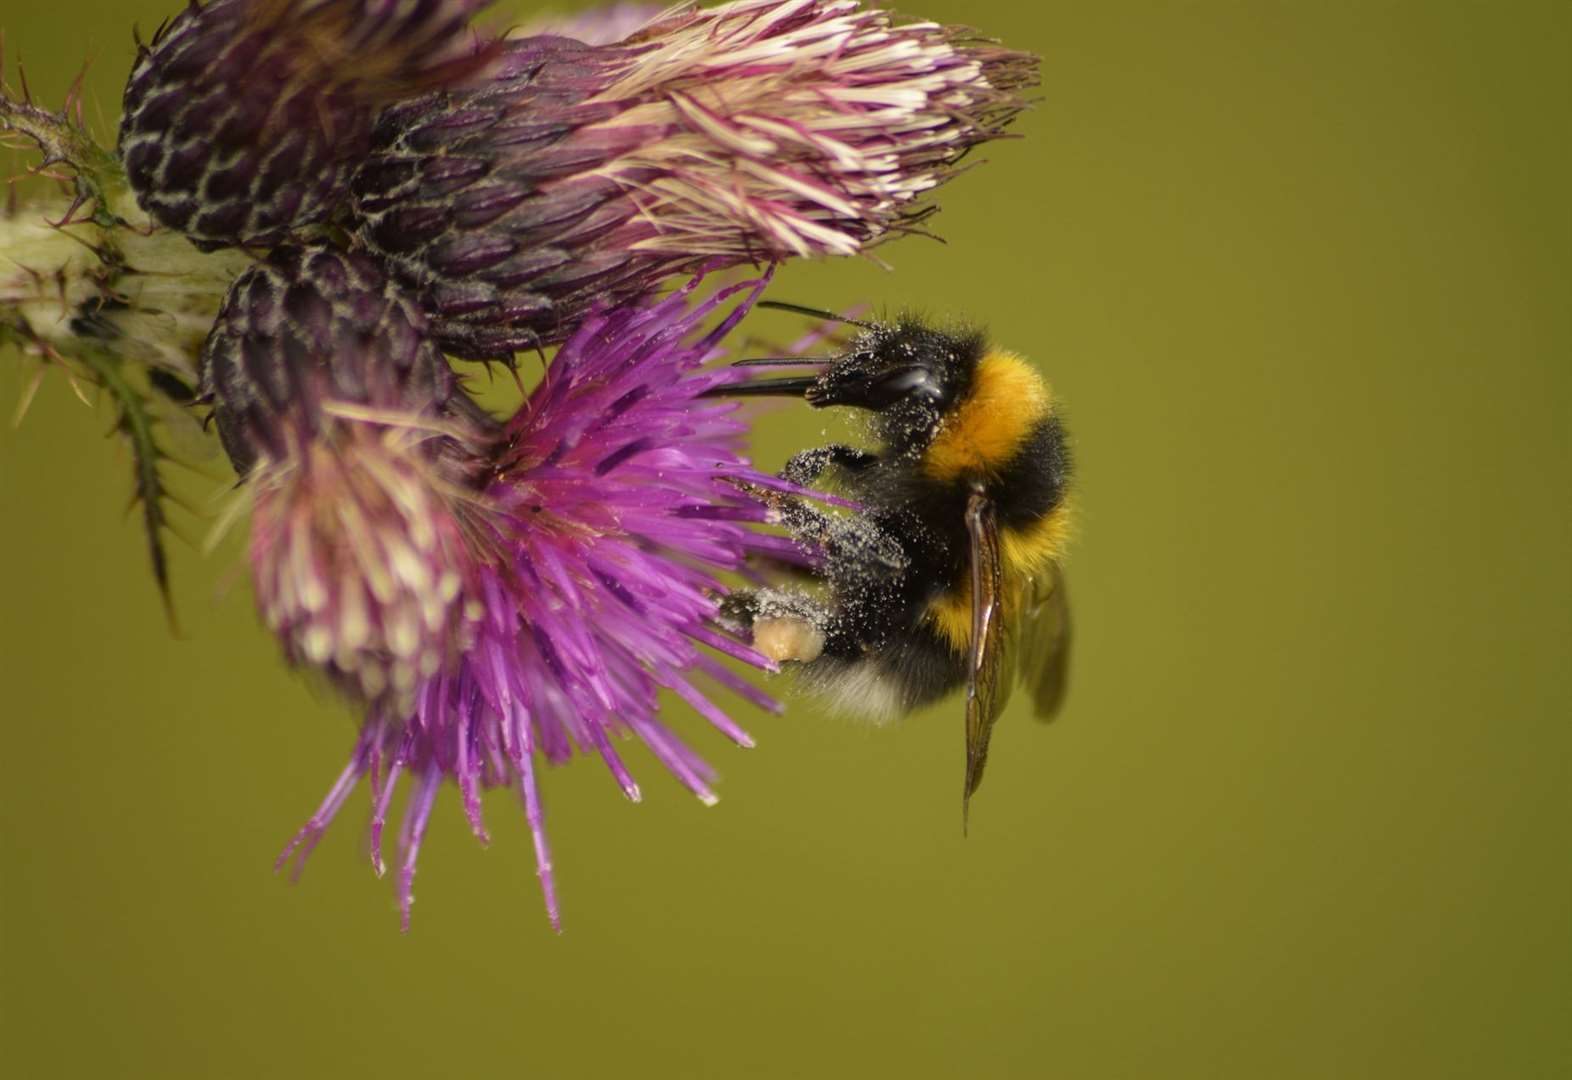 TAKE A WALK ON THE WILDSIDE: The humble bumblebee